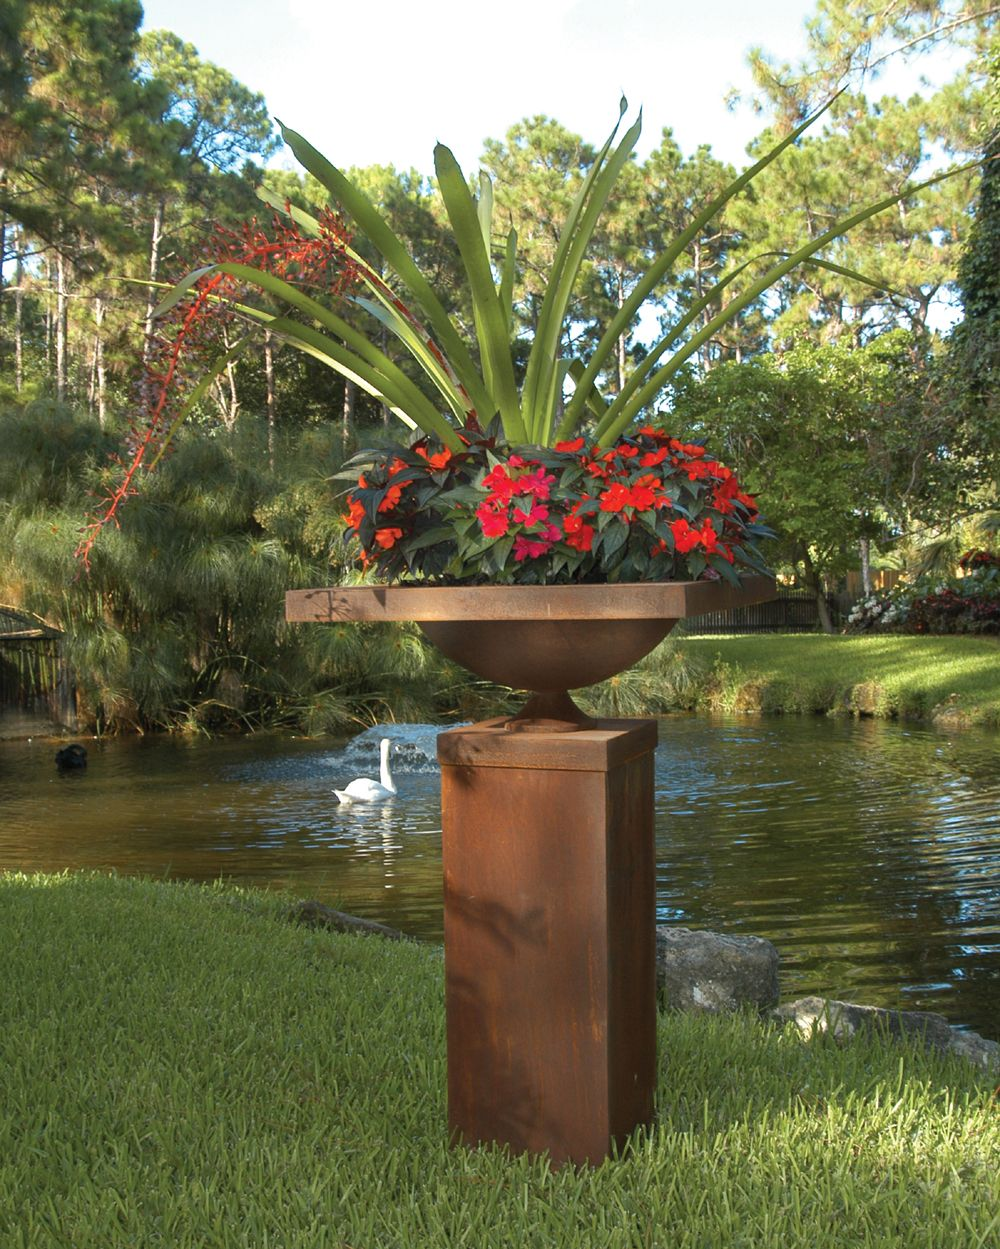 South Florida Tropical Landscape Ideas Planter Container: Bromeliads Form The Centerpiece (one Of My Favorite